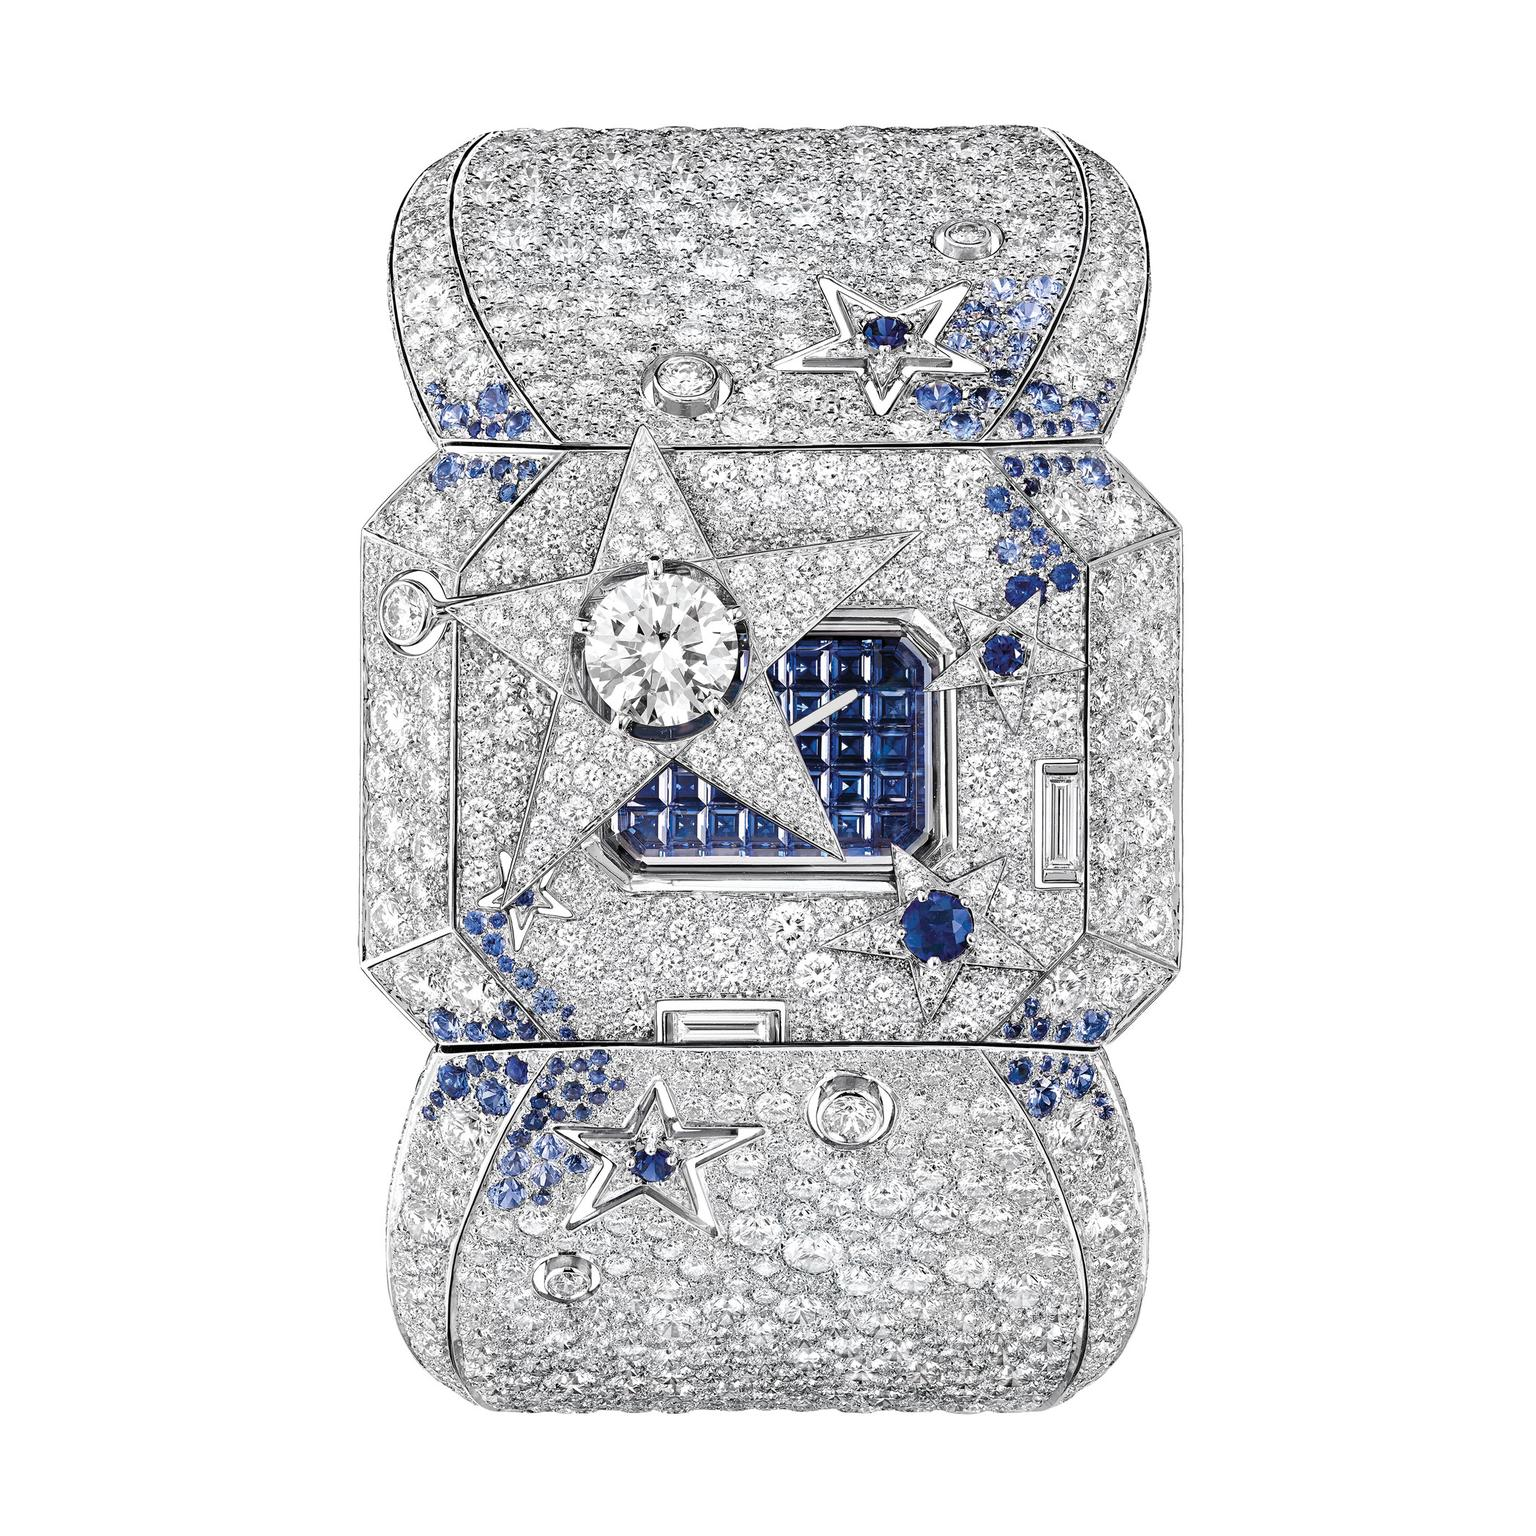 Chanel high jewellery Cométe secret diamond watch_zoom